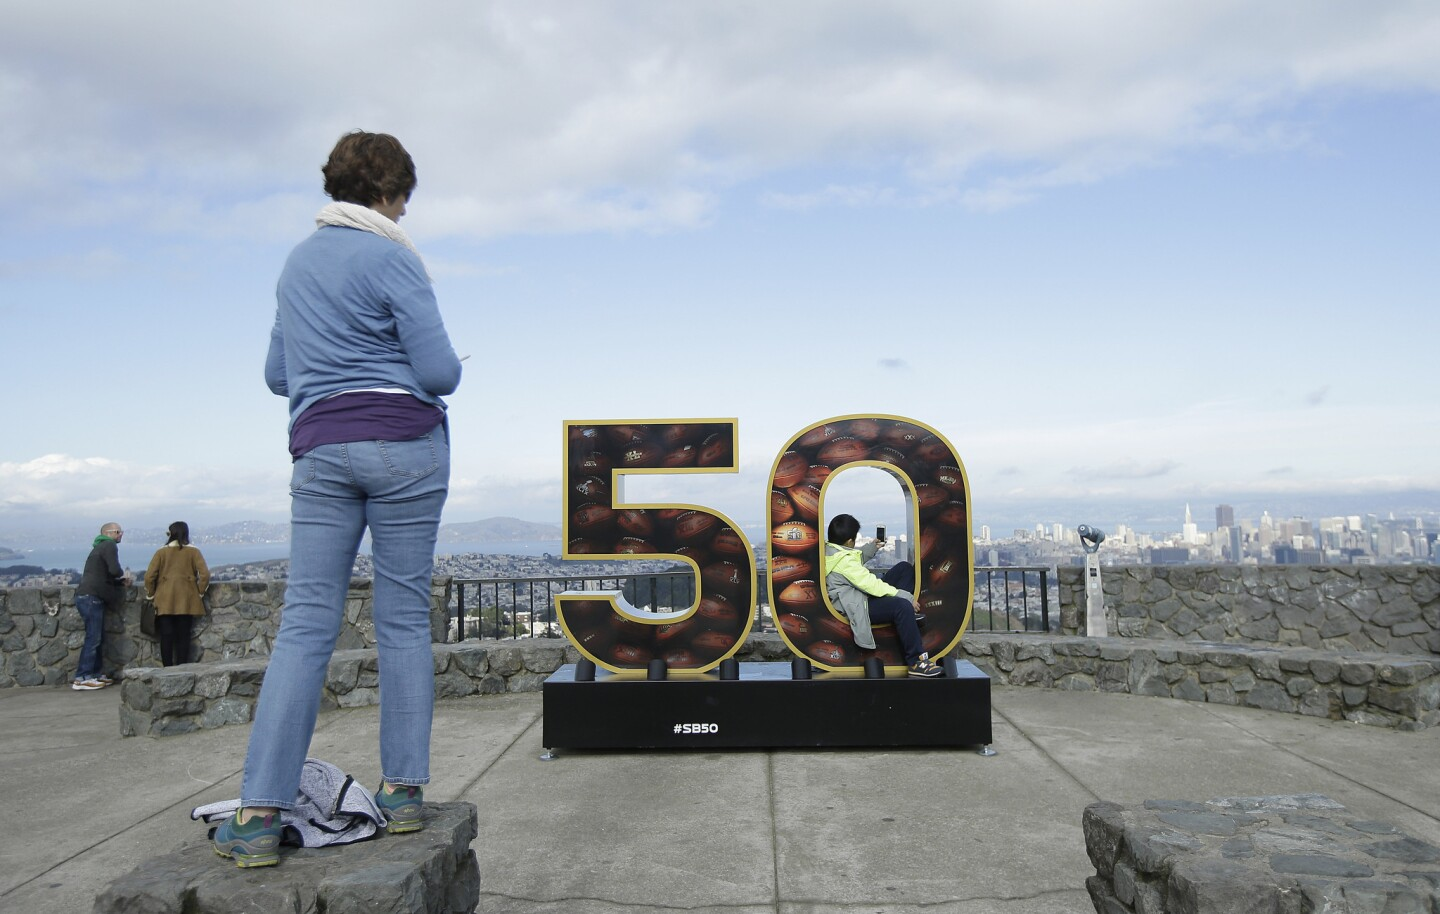 A Super Bowl 50 sign decorates a lookout point at Twin Peaks in San Francisco, Tuesday, Feb. 2, 2016. The Denver Broncos will play the Carolina Panthers in Super Bowl 50 Sunday, Feb. 7, 2016. (AP Photo/Jeff Chiu)